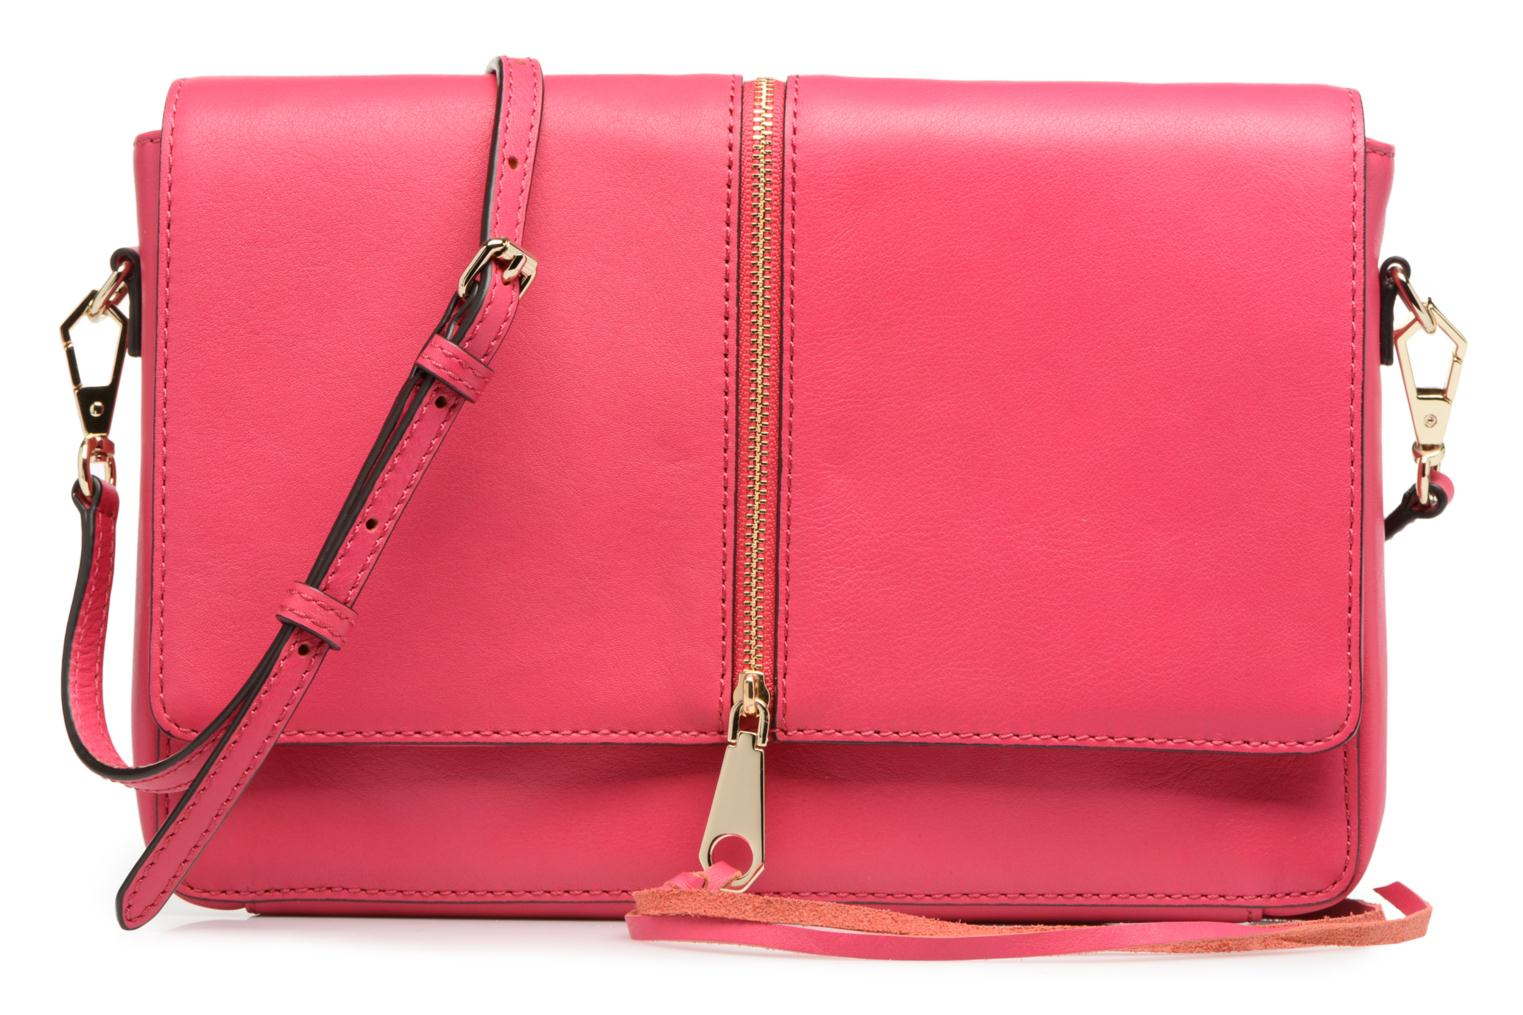 HS15IFCC22 CLUTCH LEATHER ZIP HANDBAG ZEST NINA Minkoff Rebecca wxgftnqTw